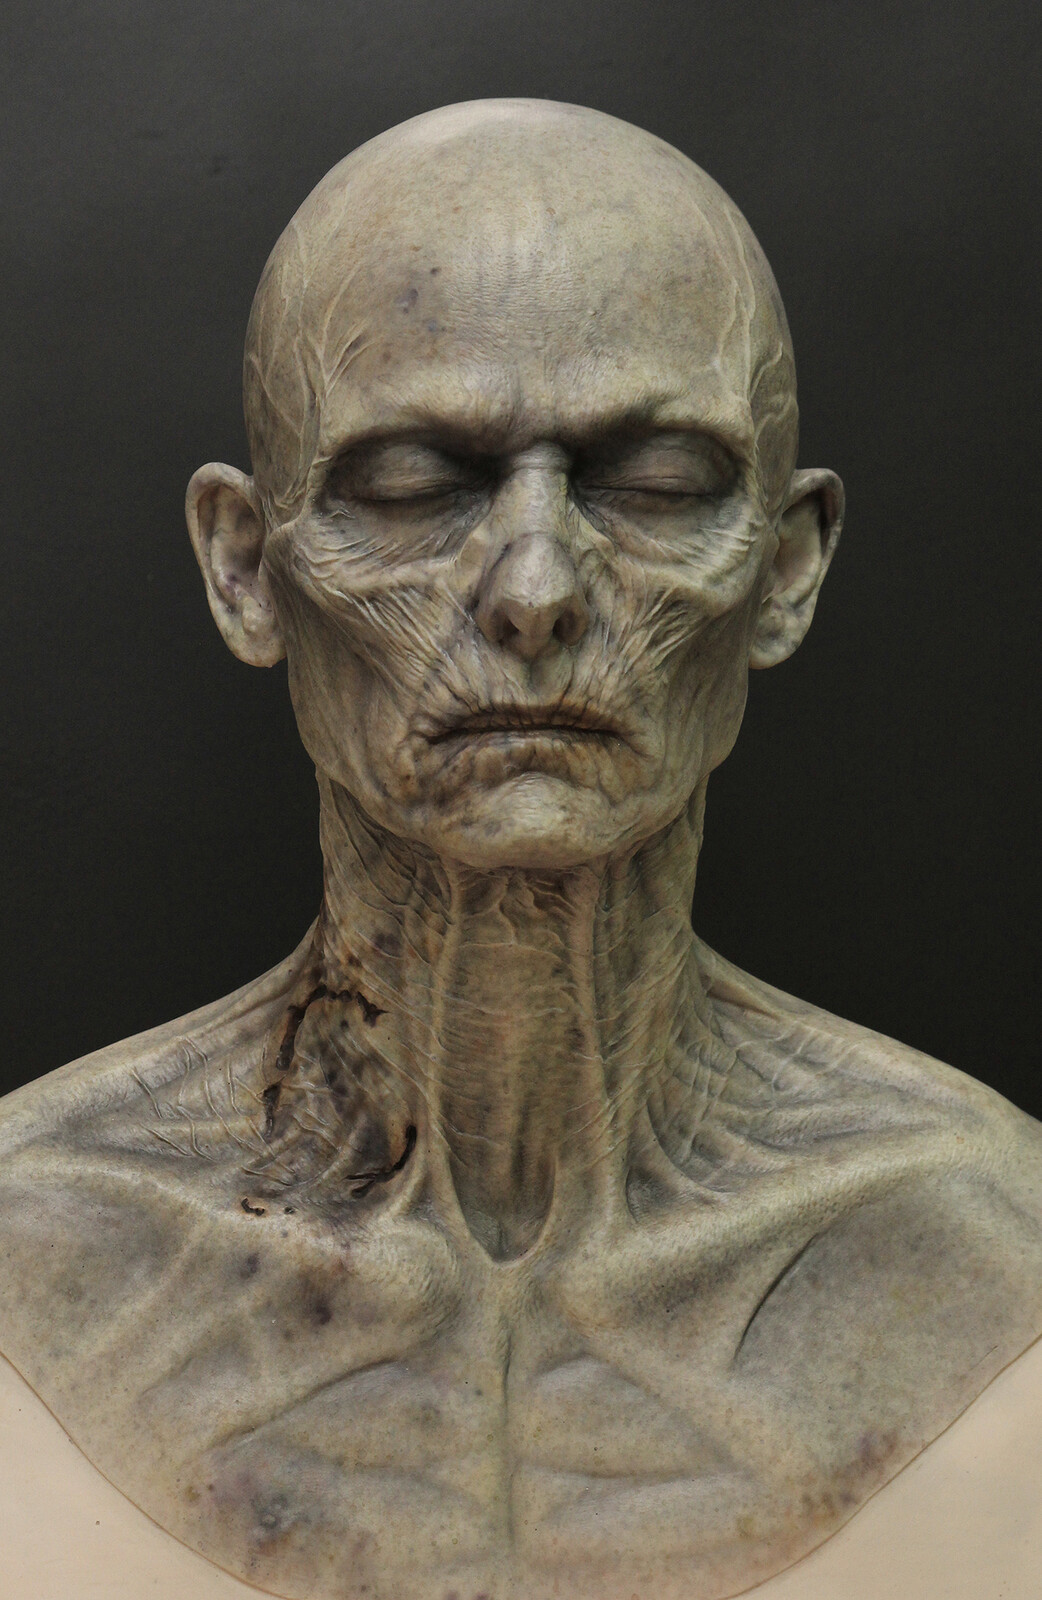 Pride and Prejudice and Zombies, 2014 / Concept Bust